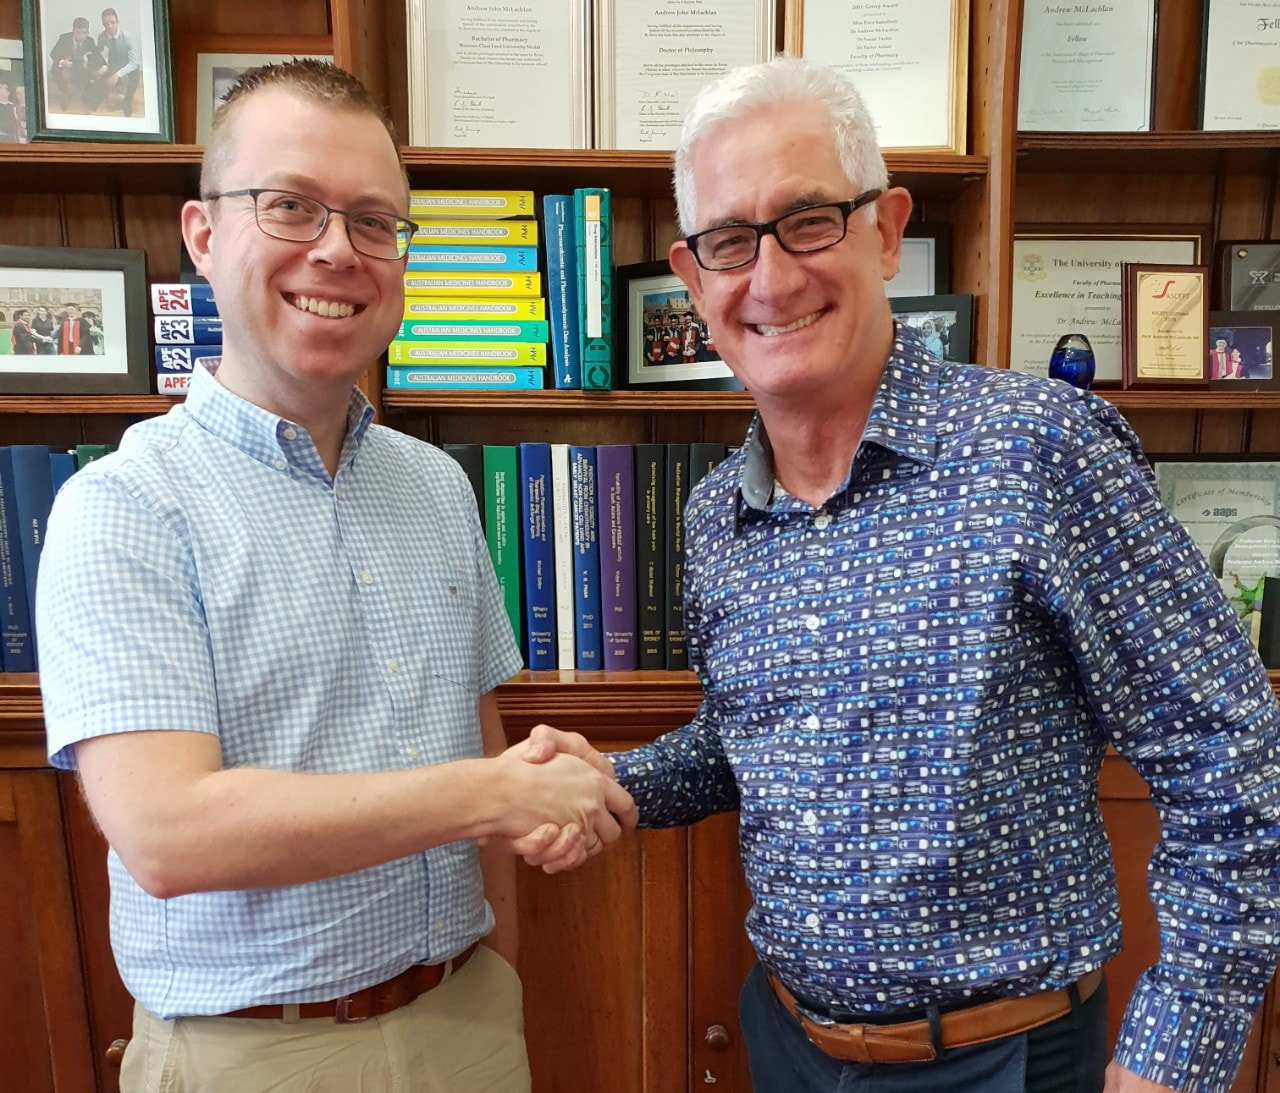 Professor Jan-Willem Alffenaar shaking hands with Professor Andrew McLachlan AM (R)